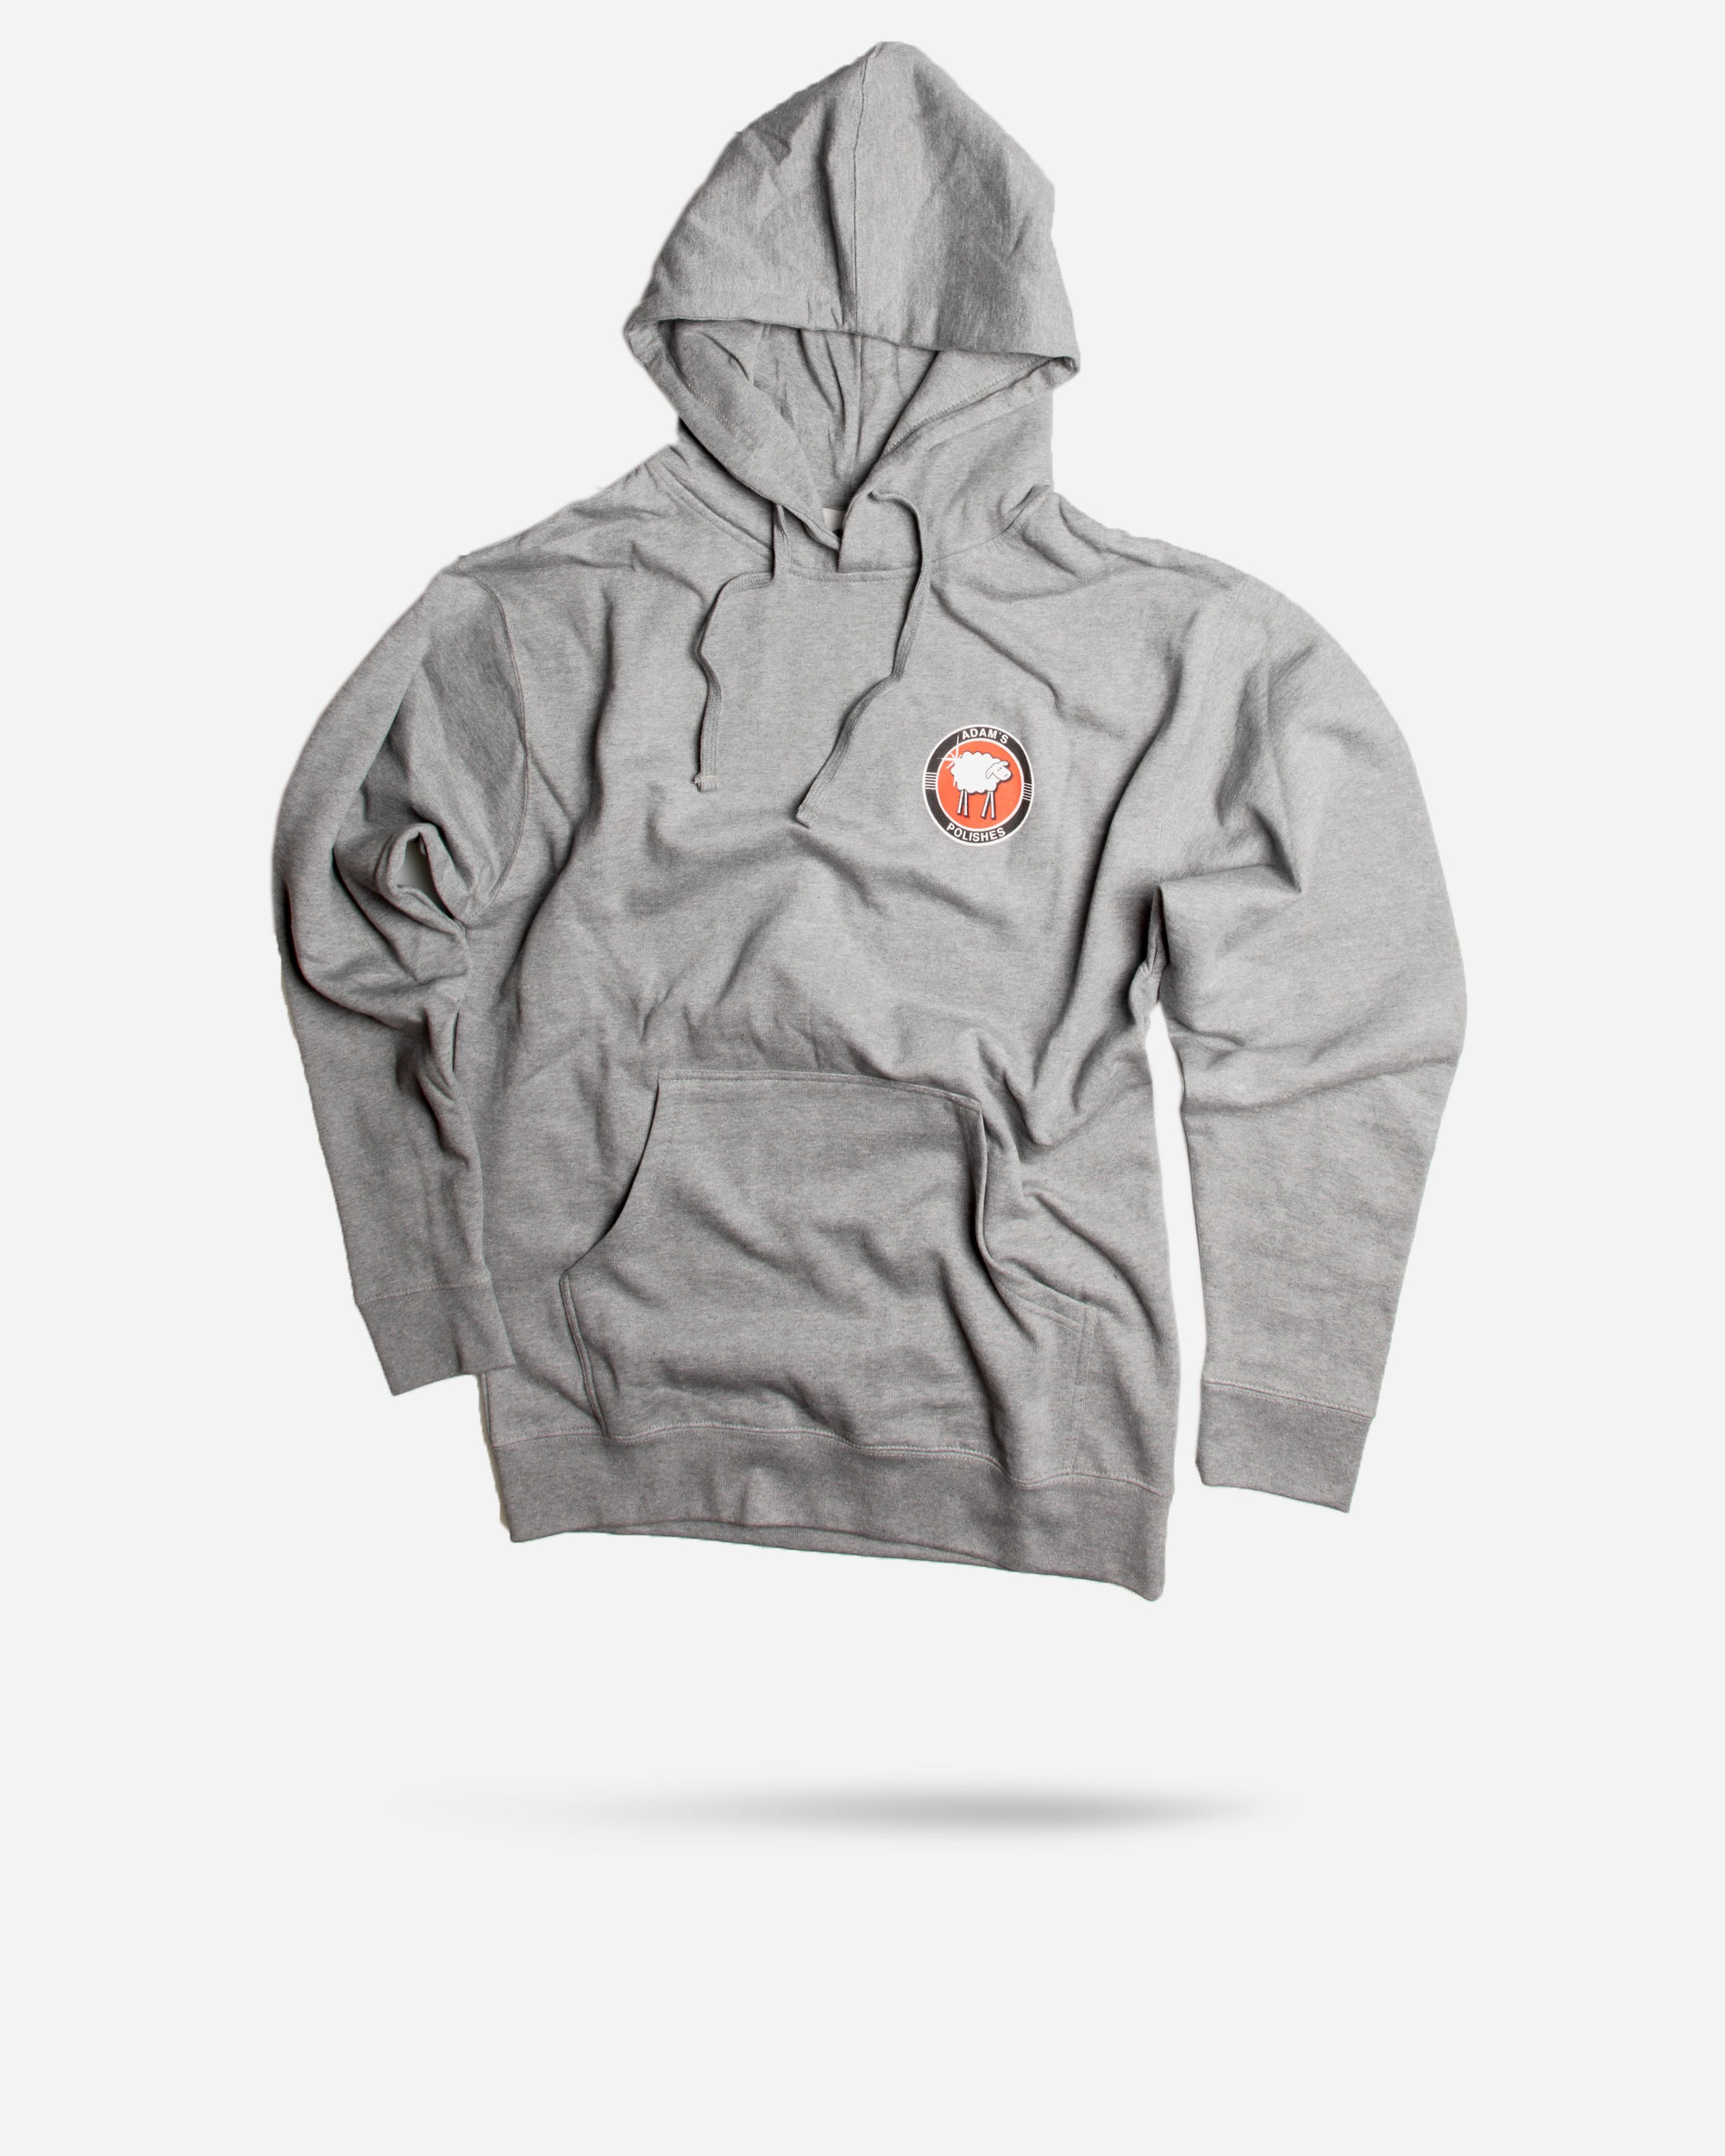 Sheepey Race X Adam's Polishes Grey Hoodie